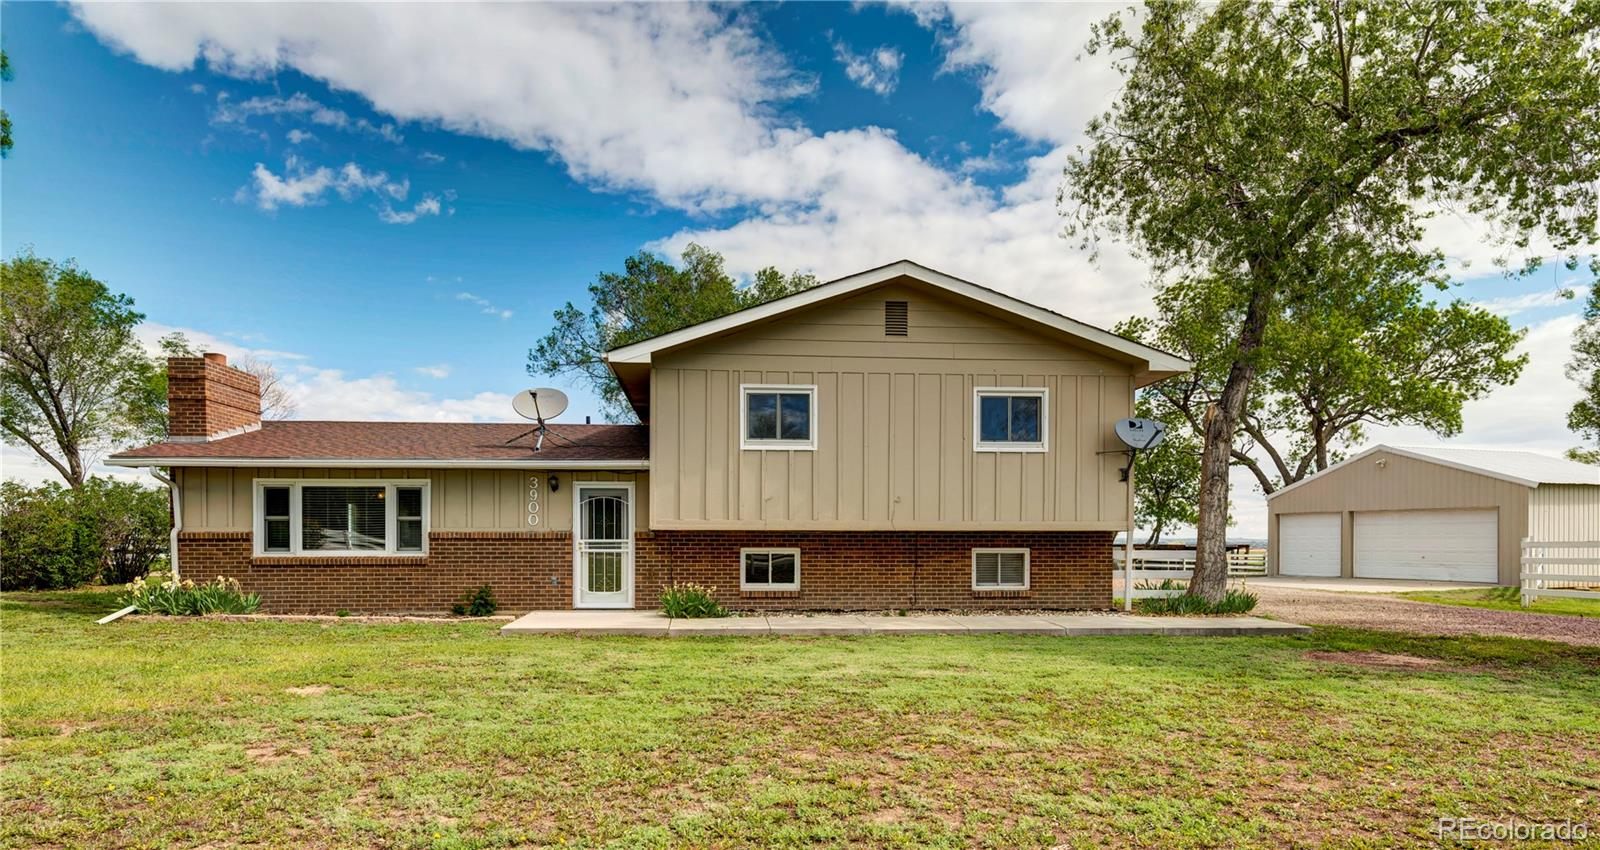 3900 E County Road 30, Fort Collins, CO 80528 - Fort Collins, CO real estate listing